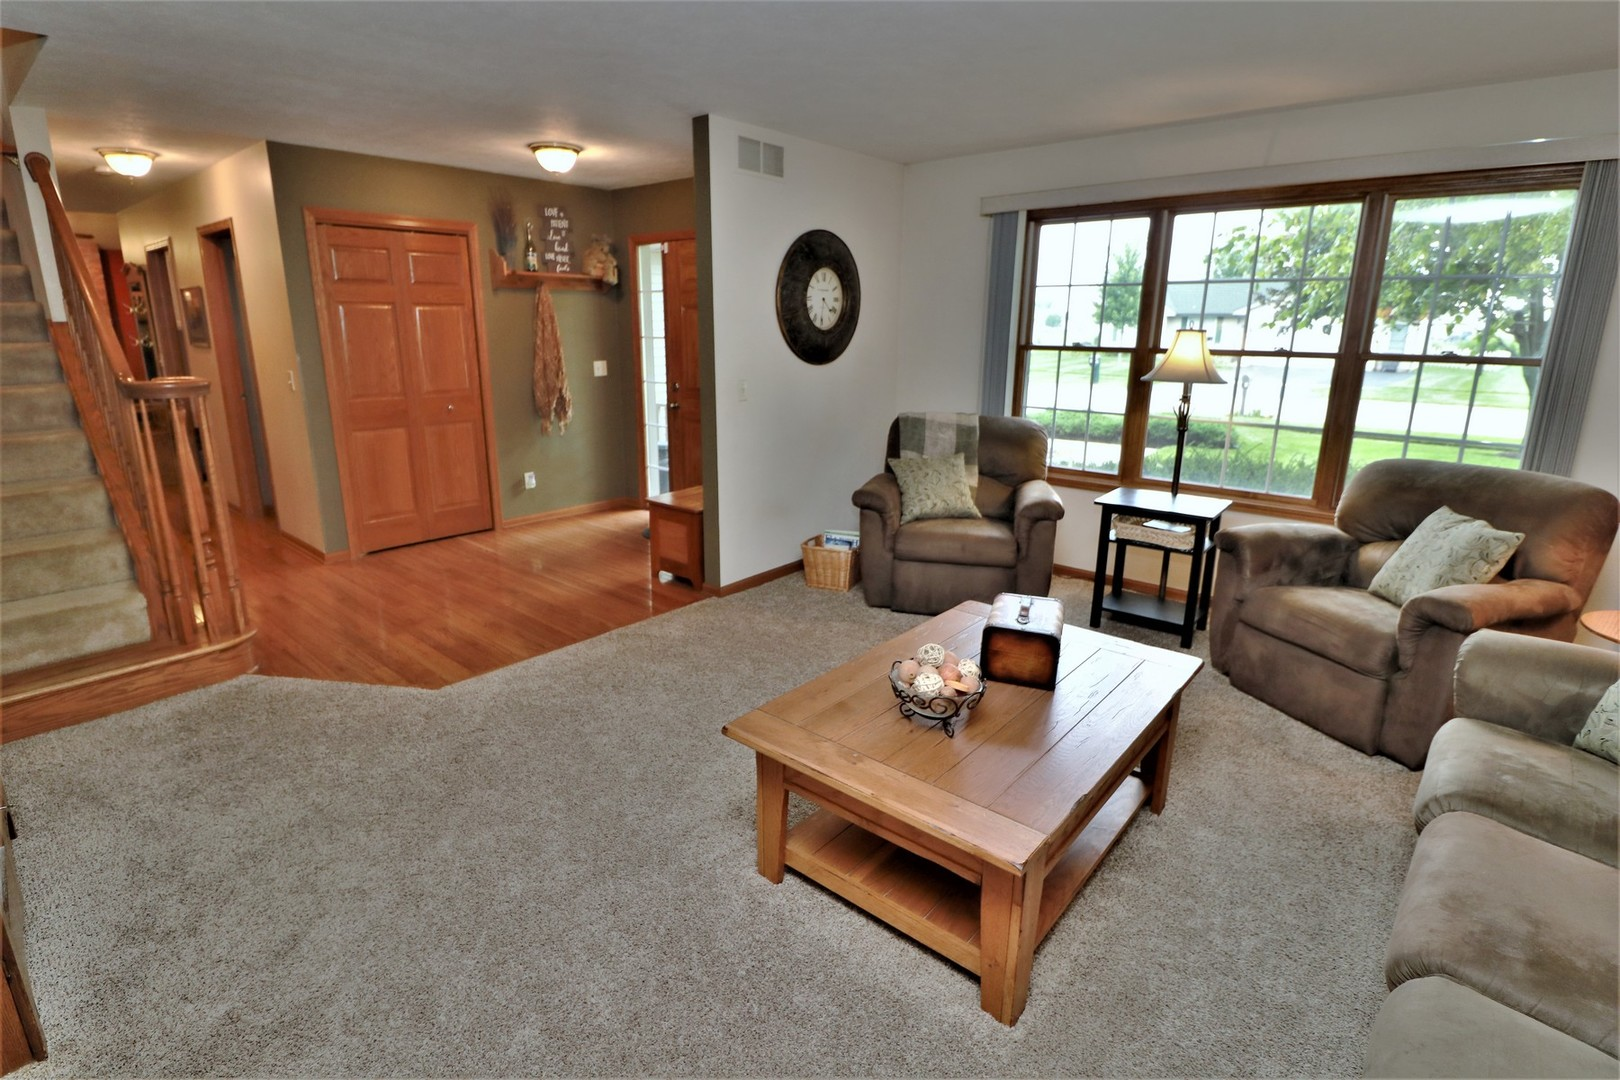 single men in taylor ridge 905 taylor ridge, belvidere, il - contact dickerson & nieman about this single family home listing in riverbend belvidere schools in boone county trust dickerson & nieman for the most.